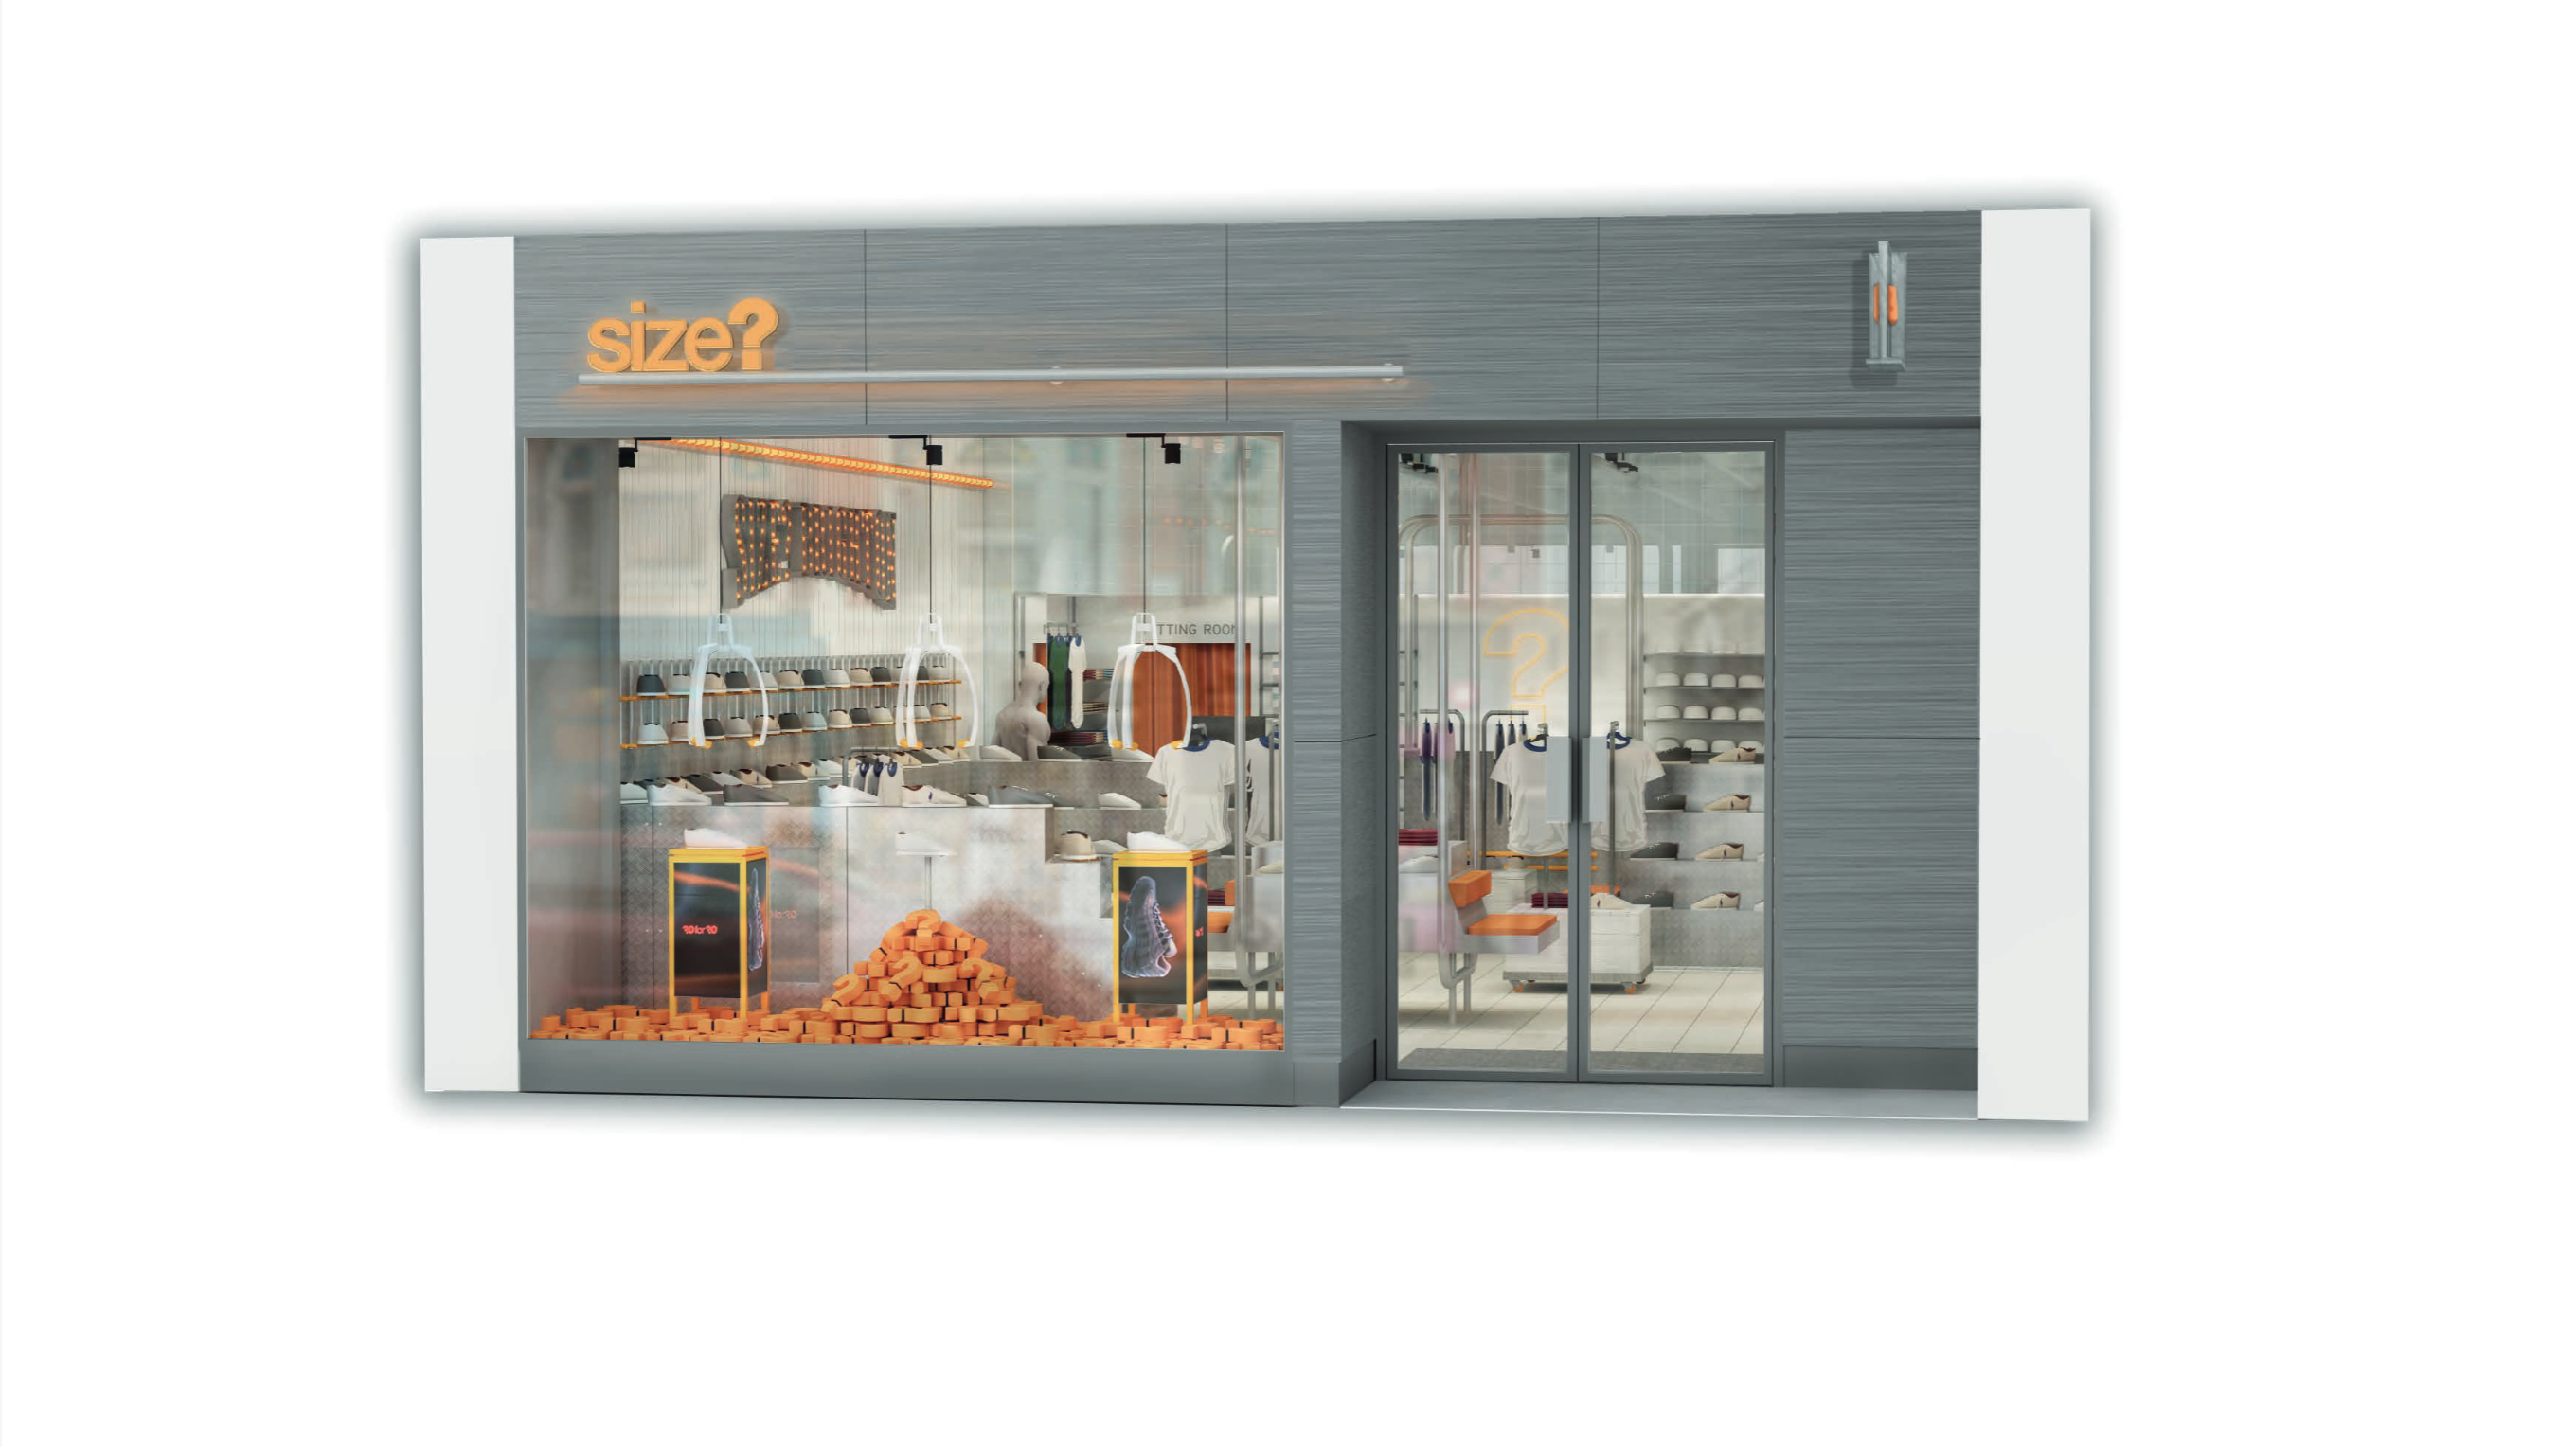 Introducing our all-new size? Brighton store